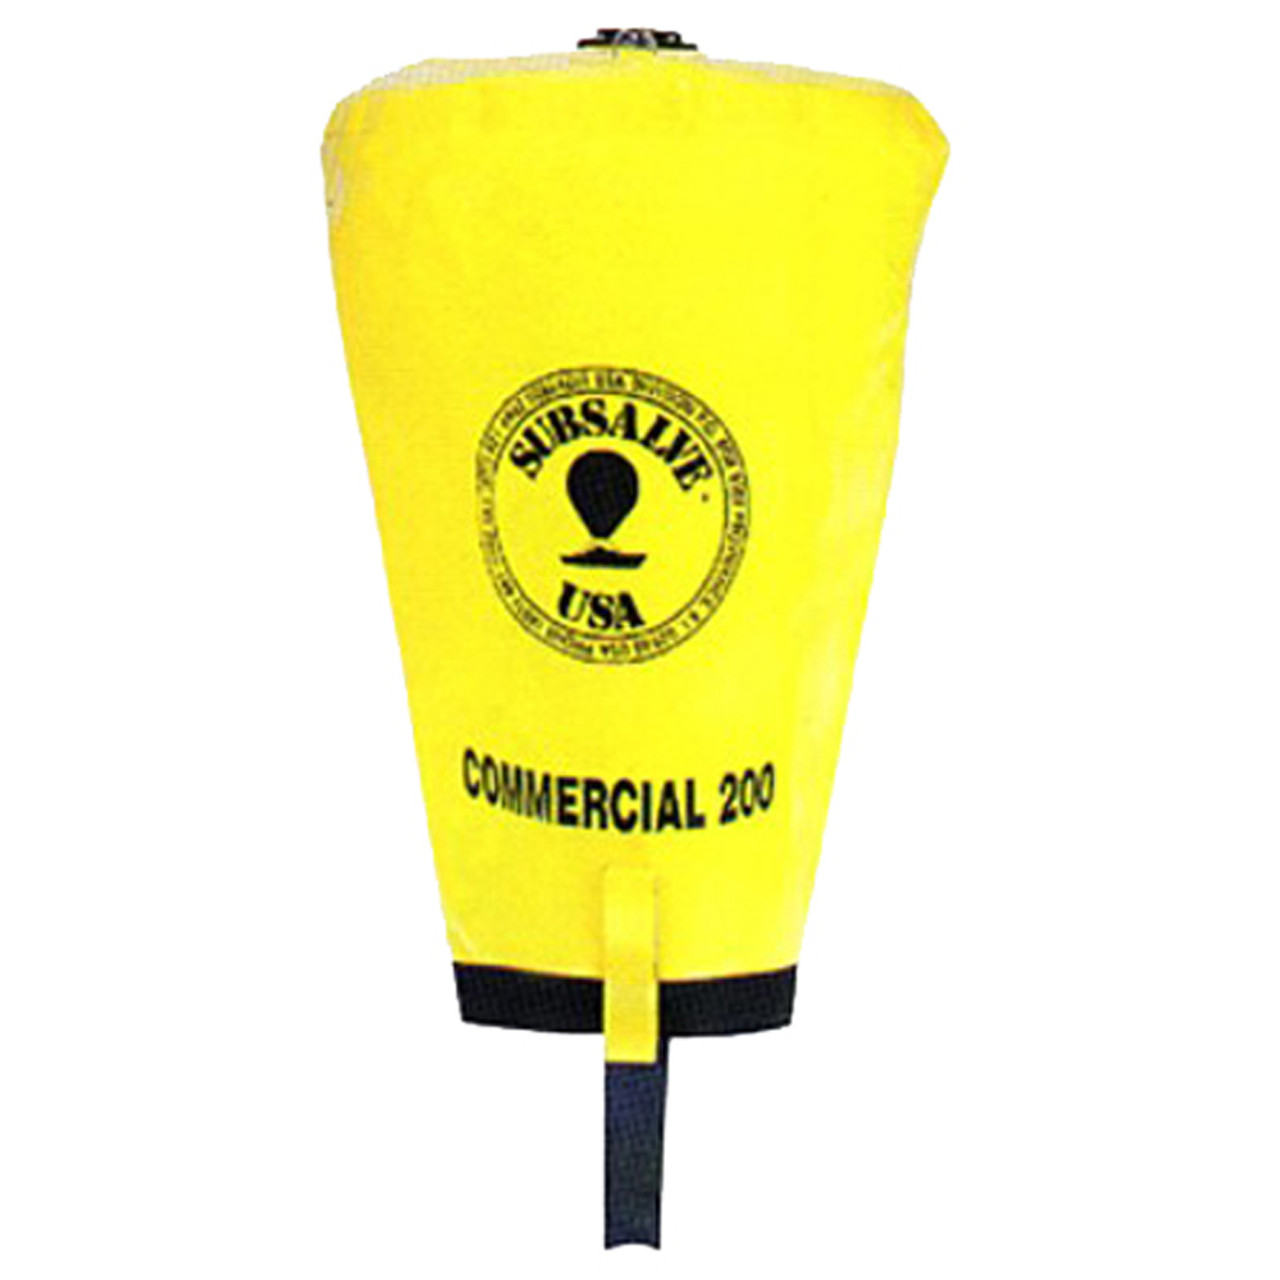 Subsalve USA Commercial Lift Bag with Dump Valve, 200 LB Capacity